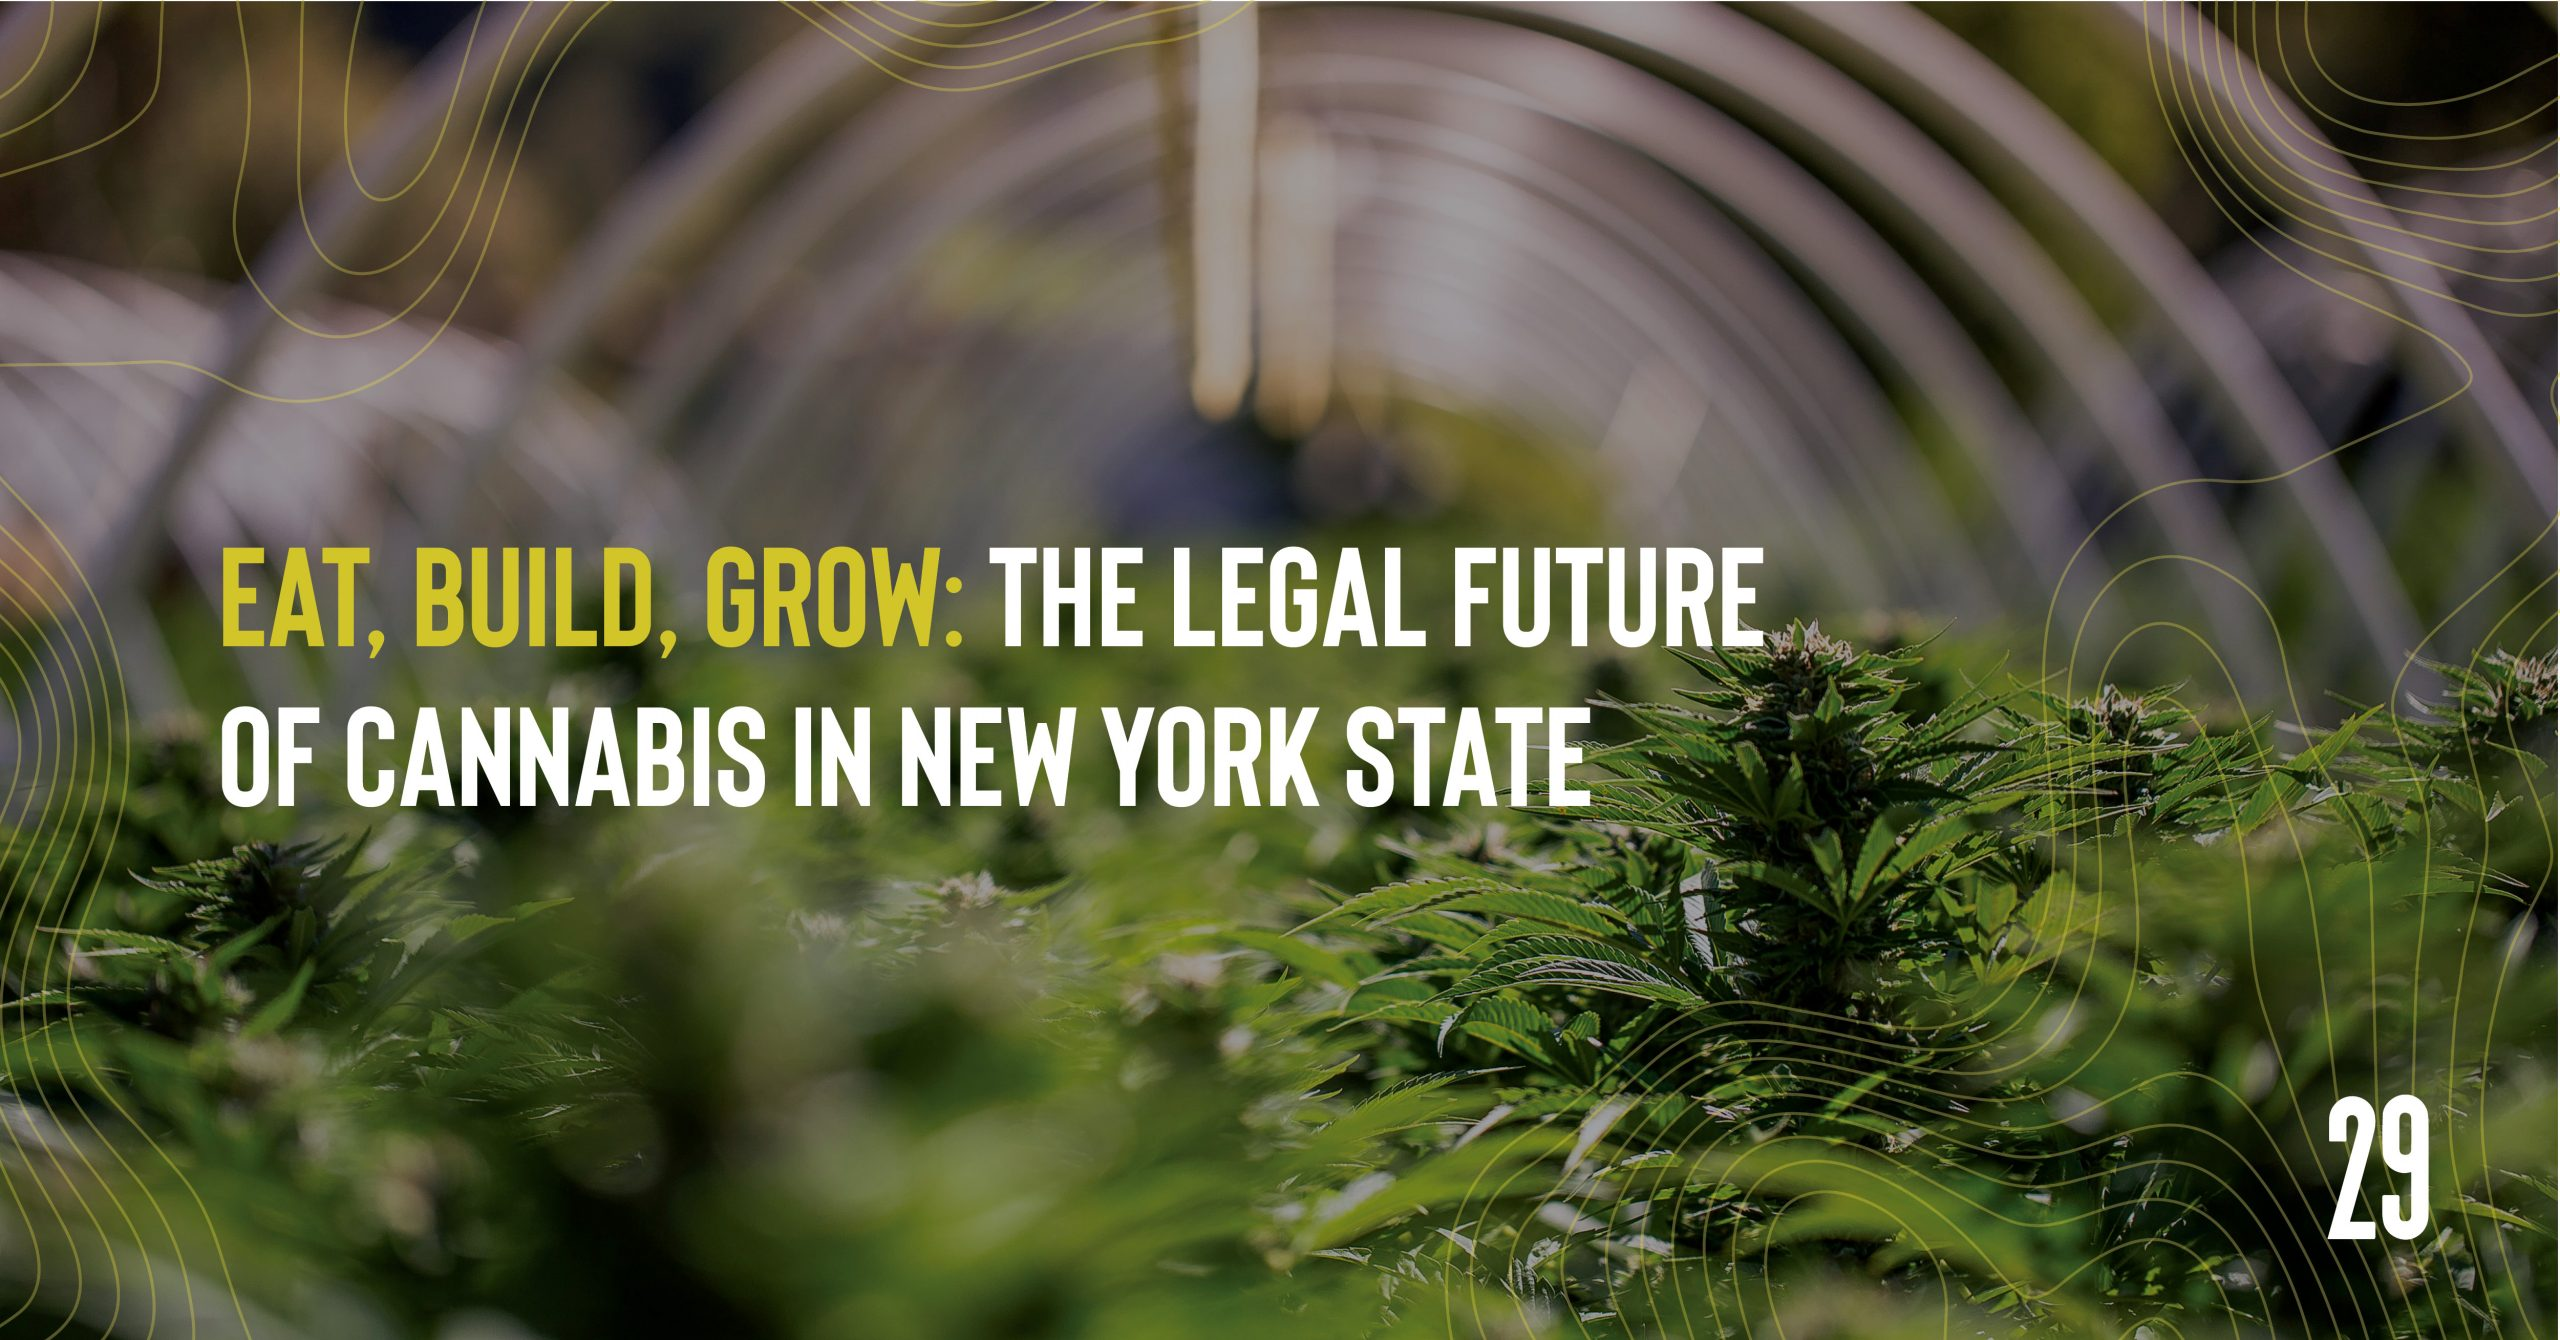 Teaser image - Eat, Build, Grow: The Legal Future of Cannabis in New York State